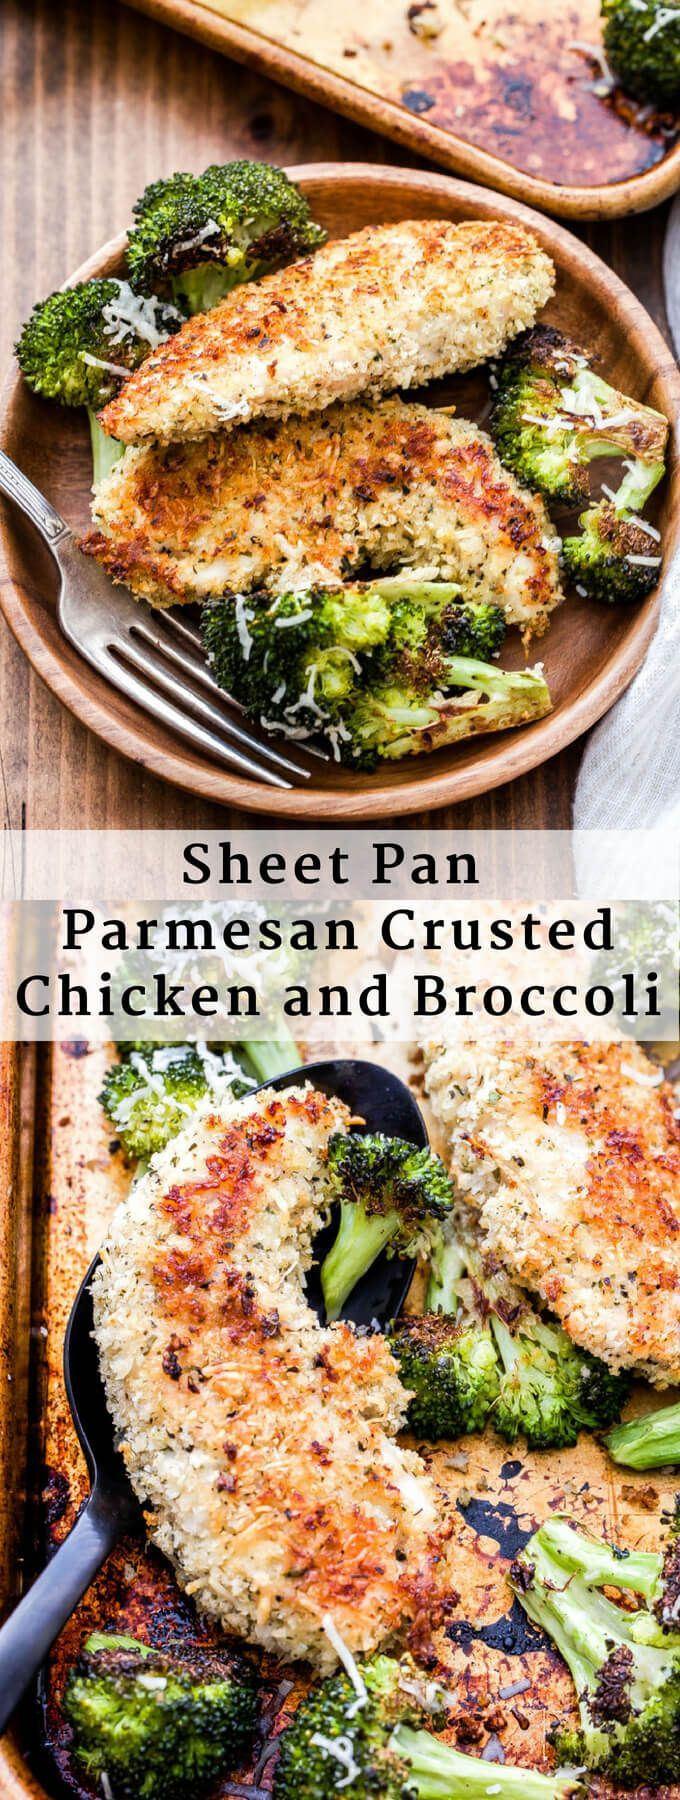 Sheet Pan Parmesan Crusted Chicken and Broccoli - Recipe Runner